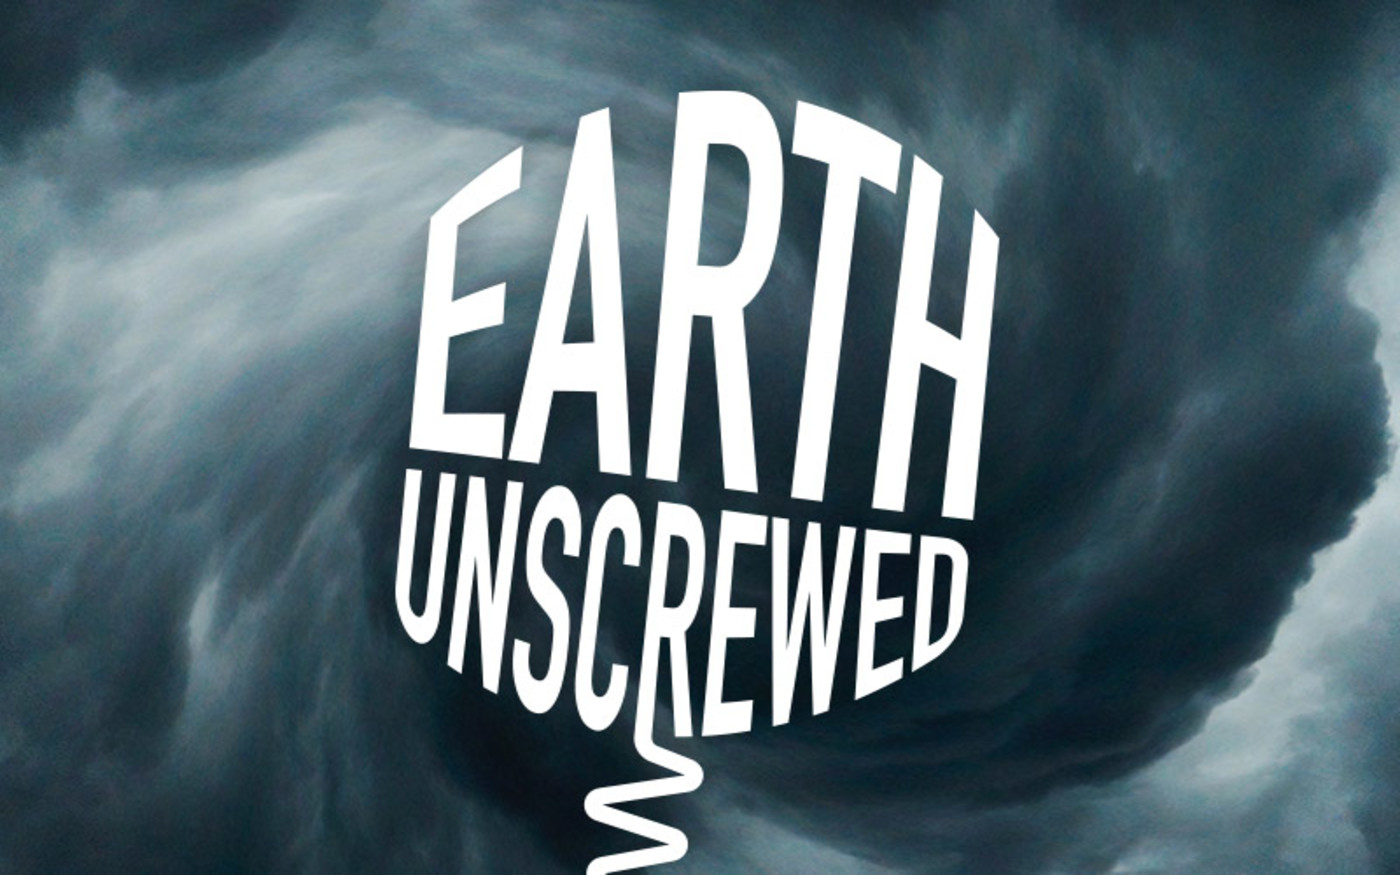 Earth Unscrewed graphic